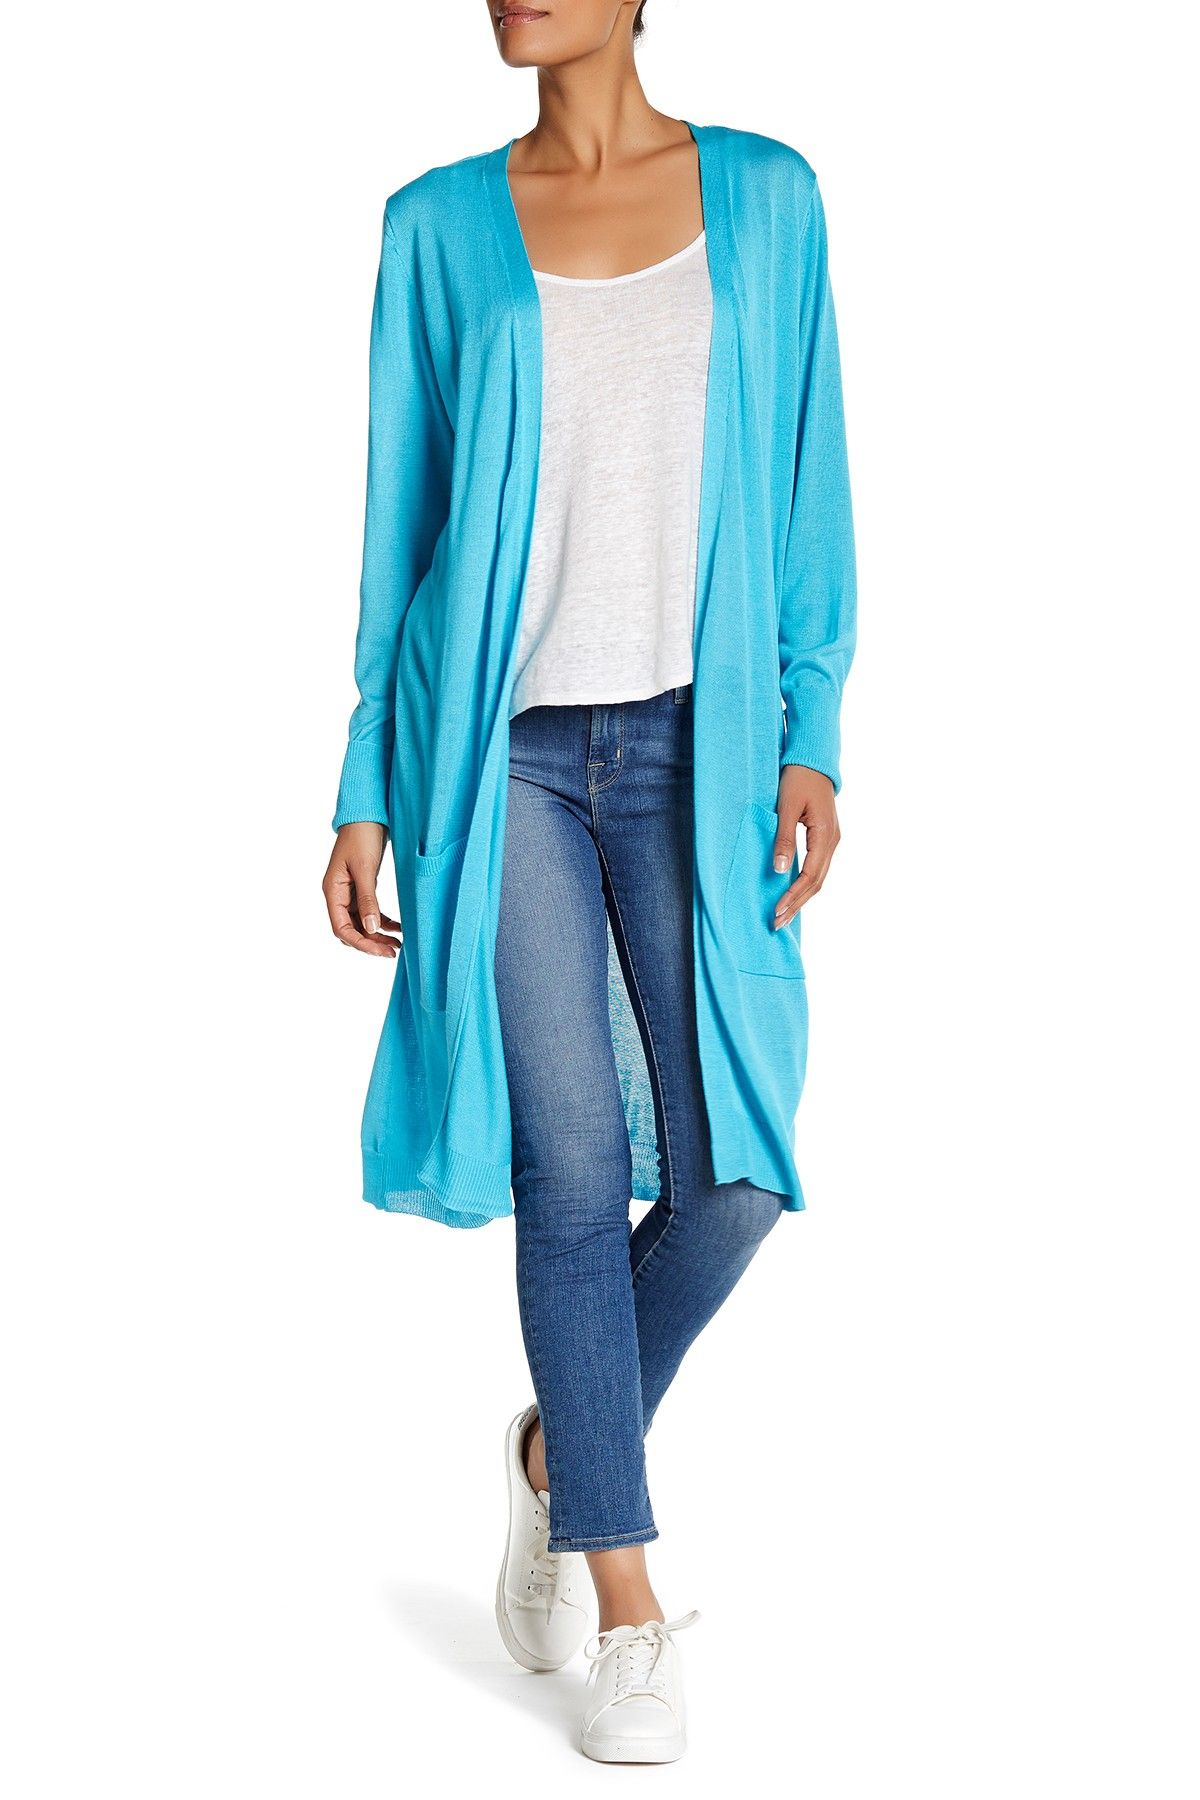 Long Pocket Duster Cardigan by JOSEPH A on @nordstrom_rack